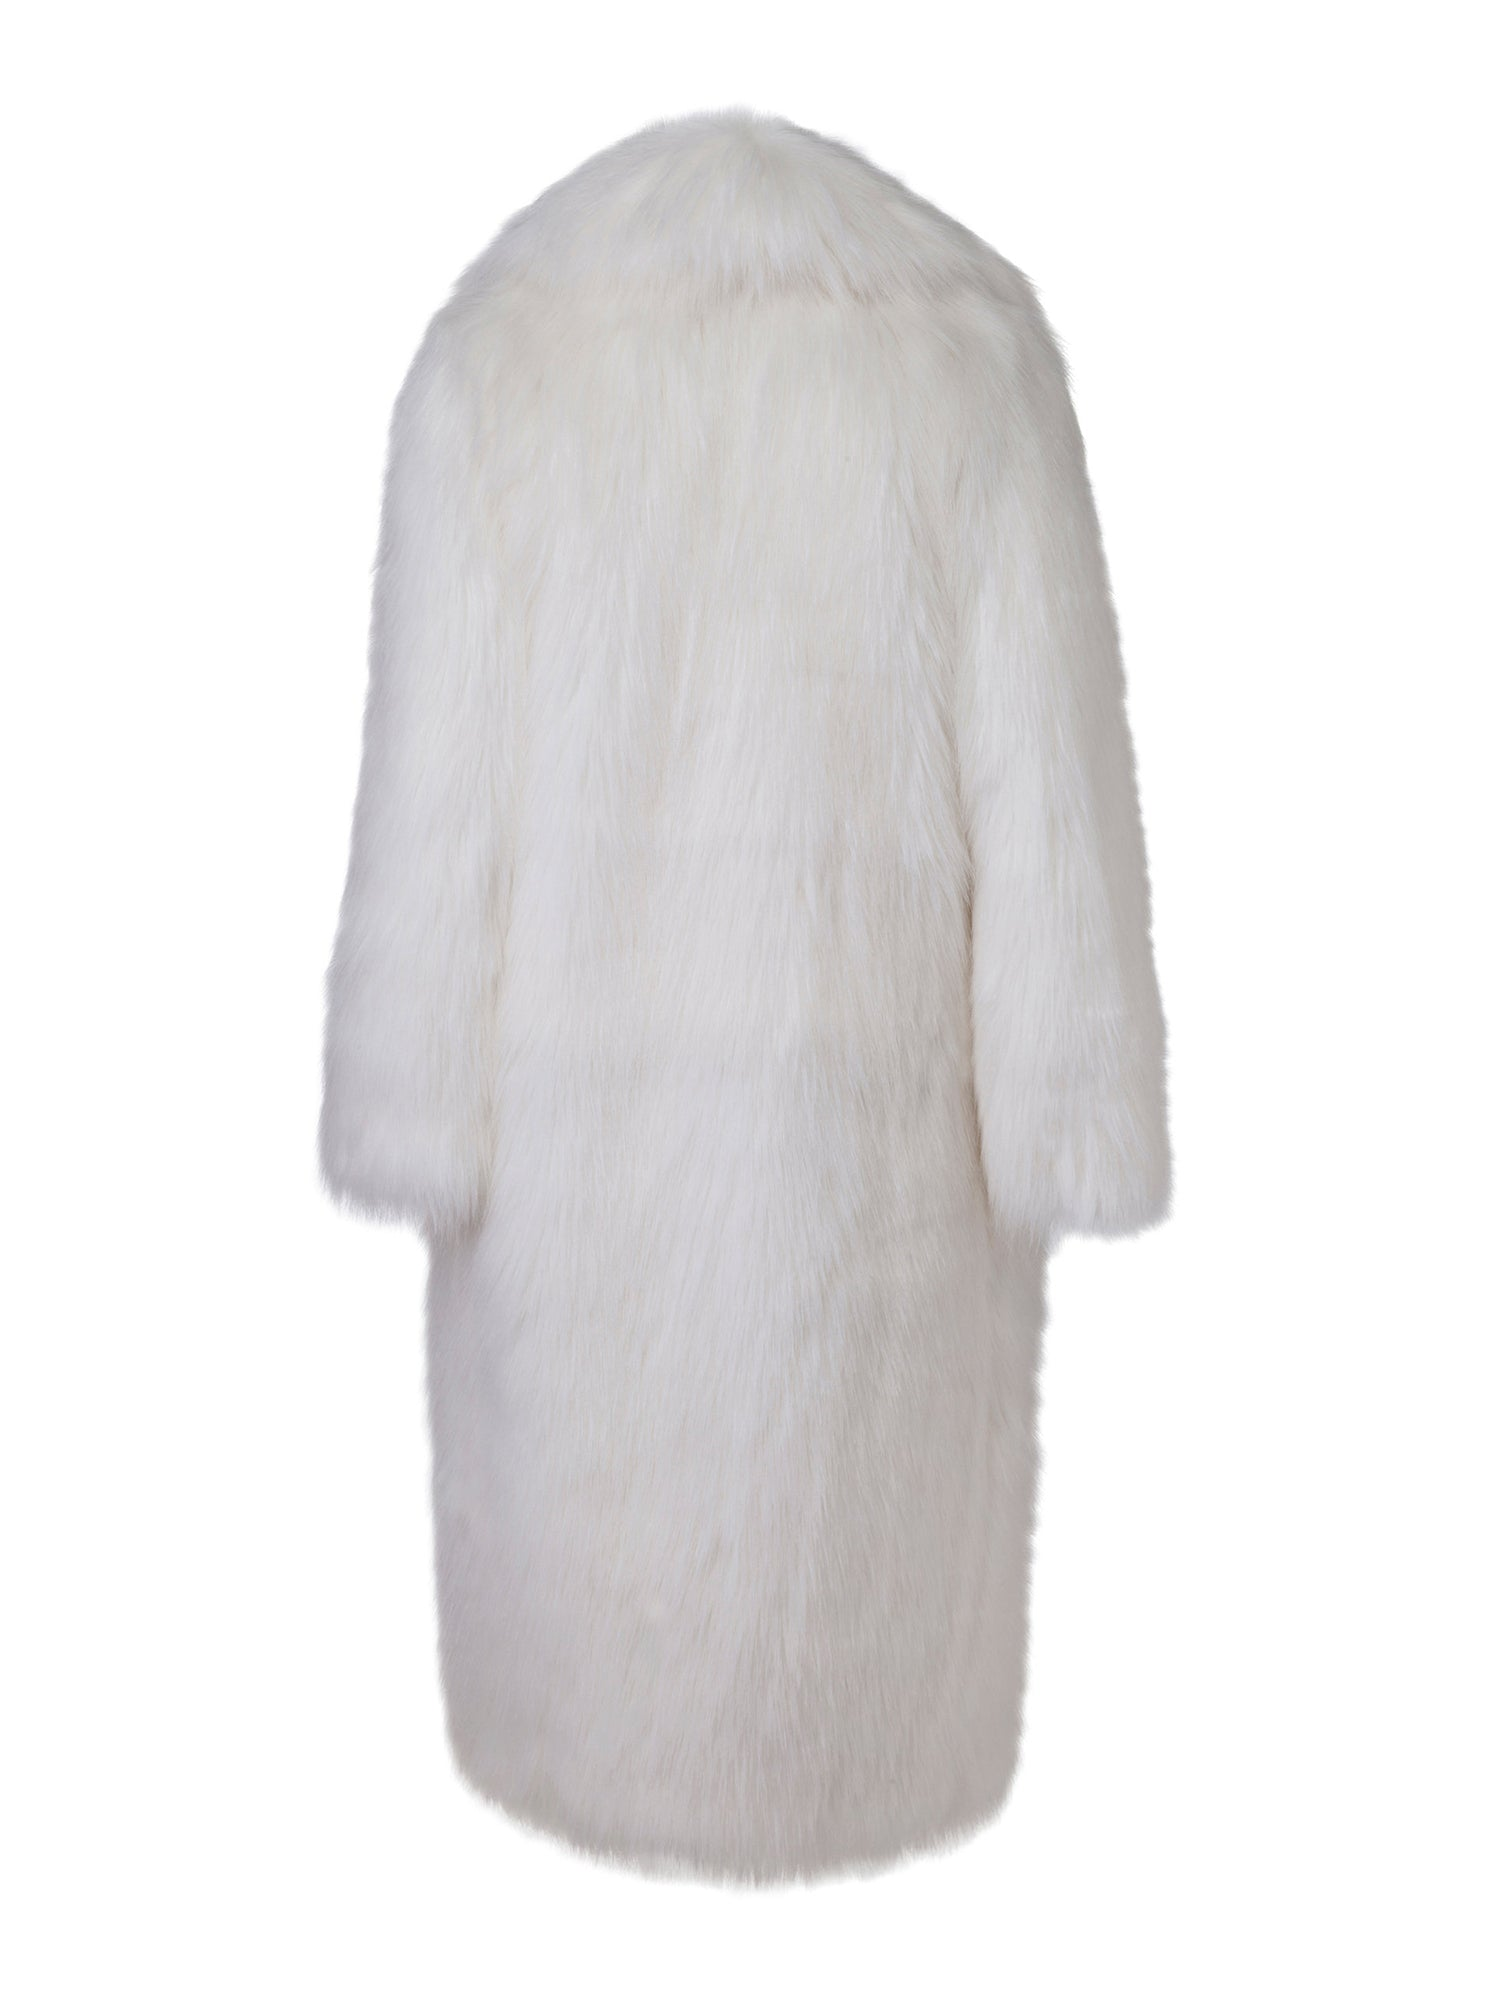 A Packshot Of Marei1998's Datura Long Faux Fur Coat In Ivory Color. Featuring A Slight A-Lined Silhouette, It Is Made From The Fluffiest Long Pile Faux Fur. Back View.